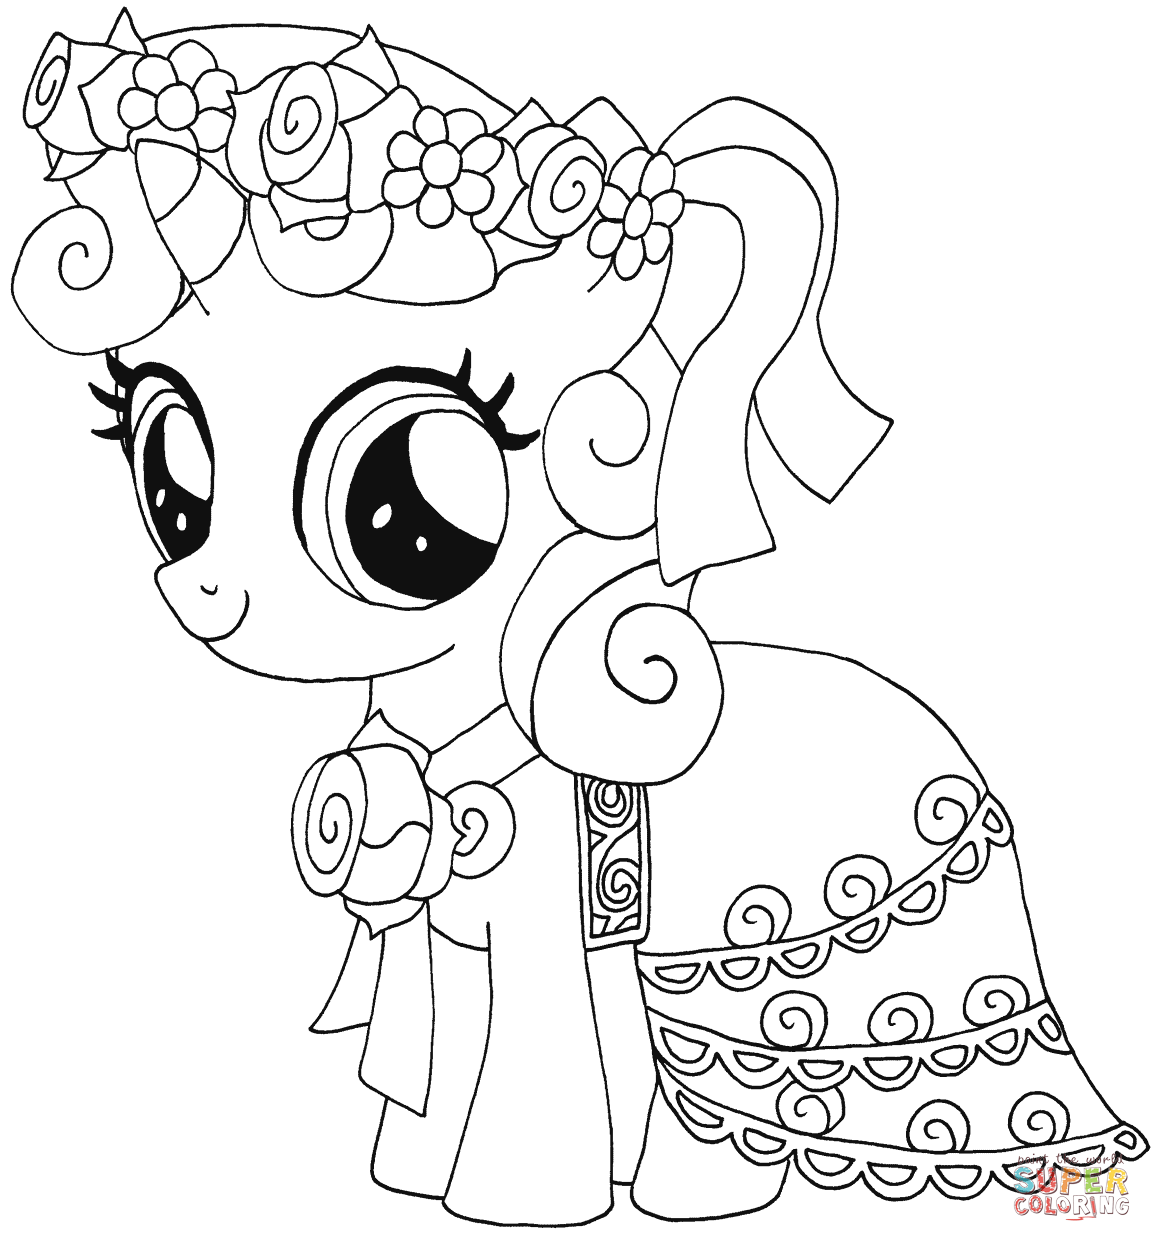 My Little Pony Sweetie Belle Coloring Page